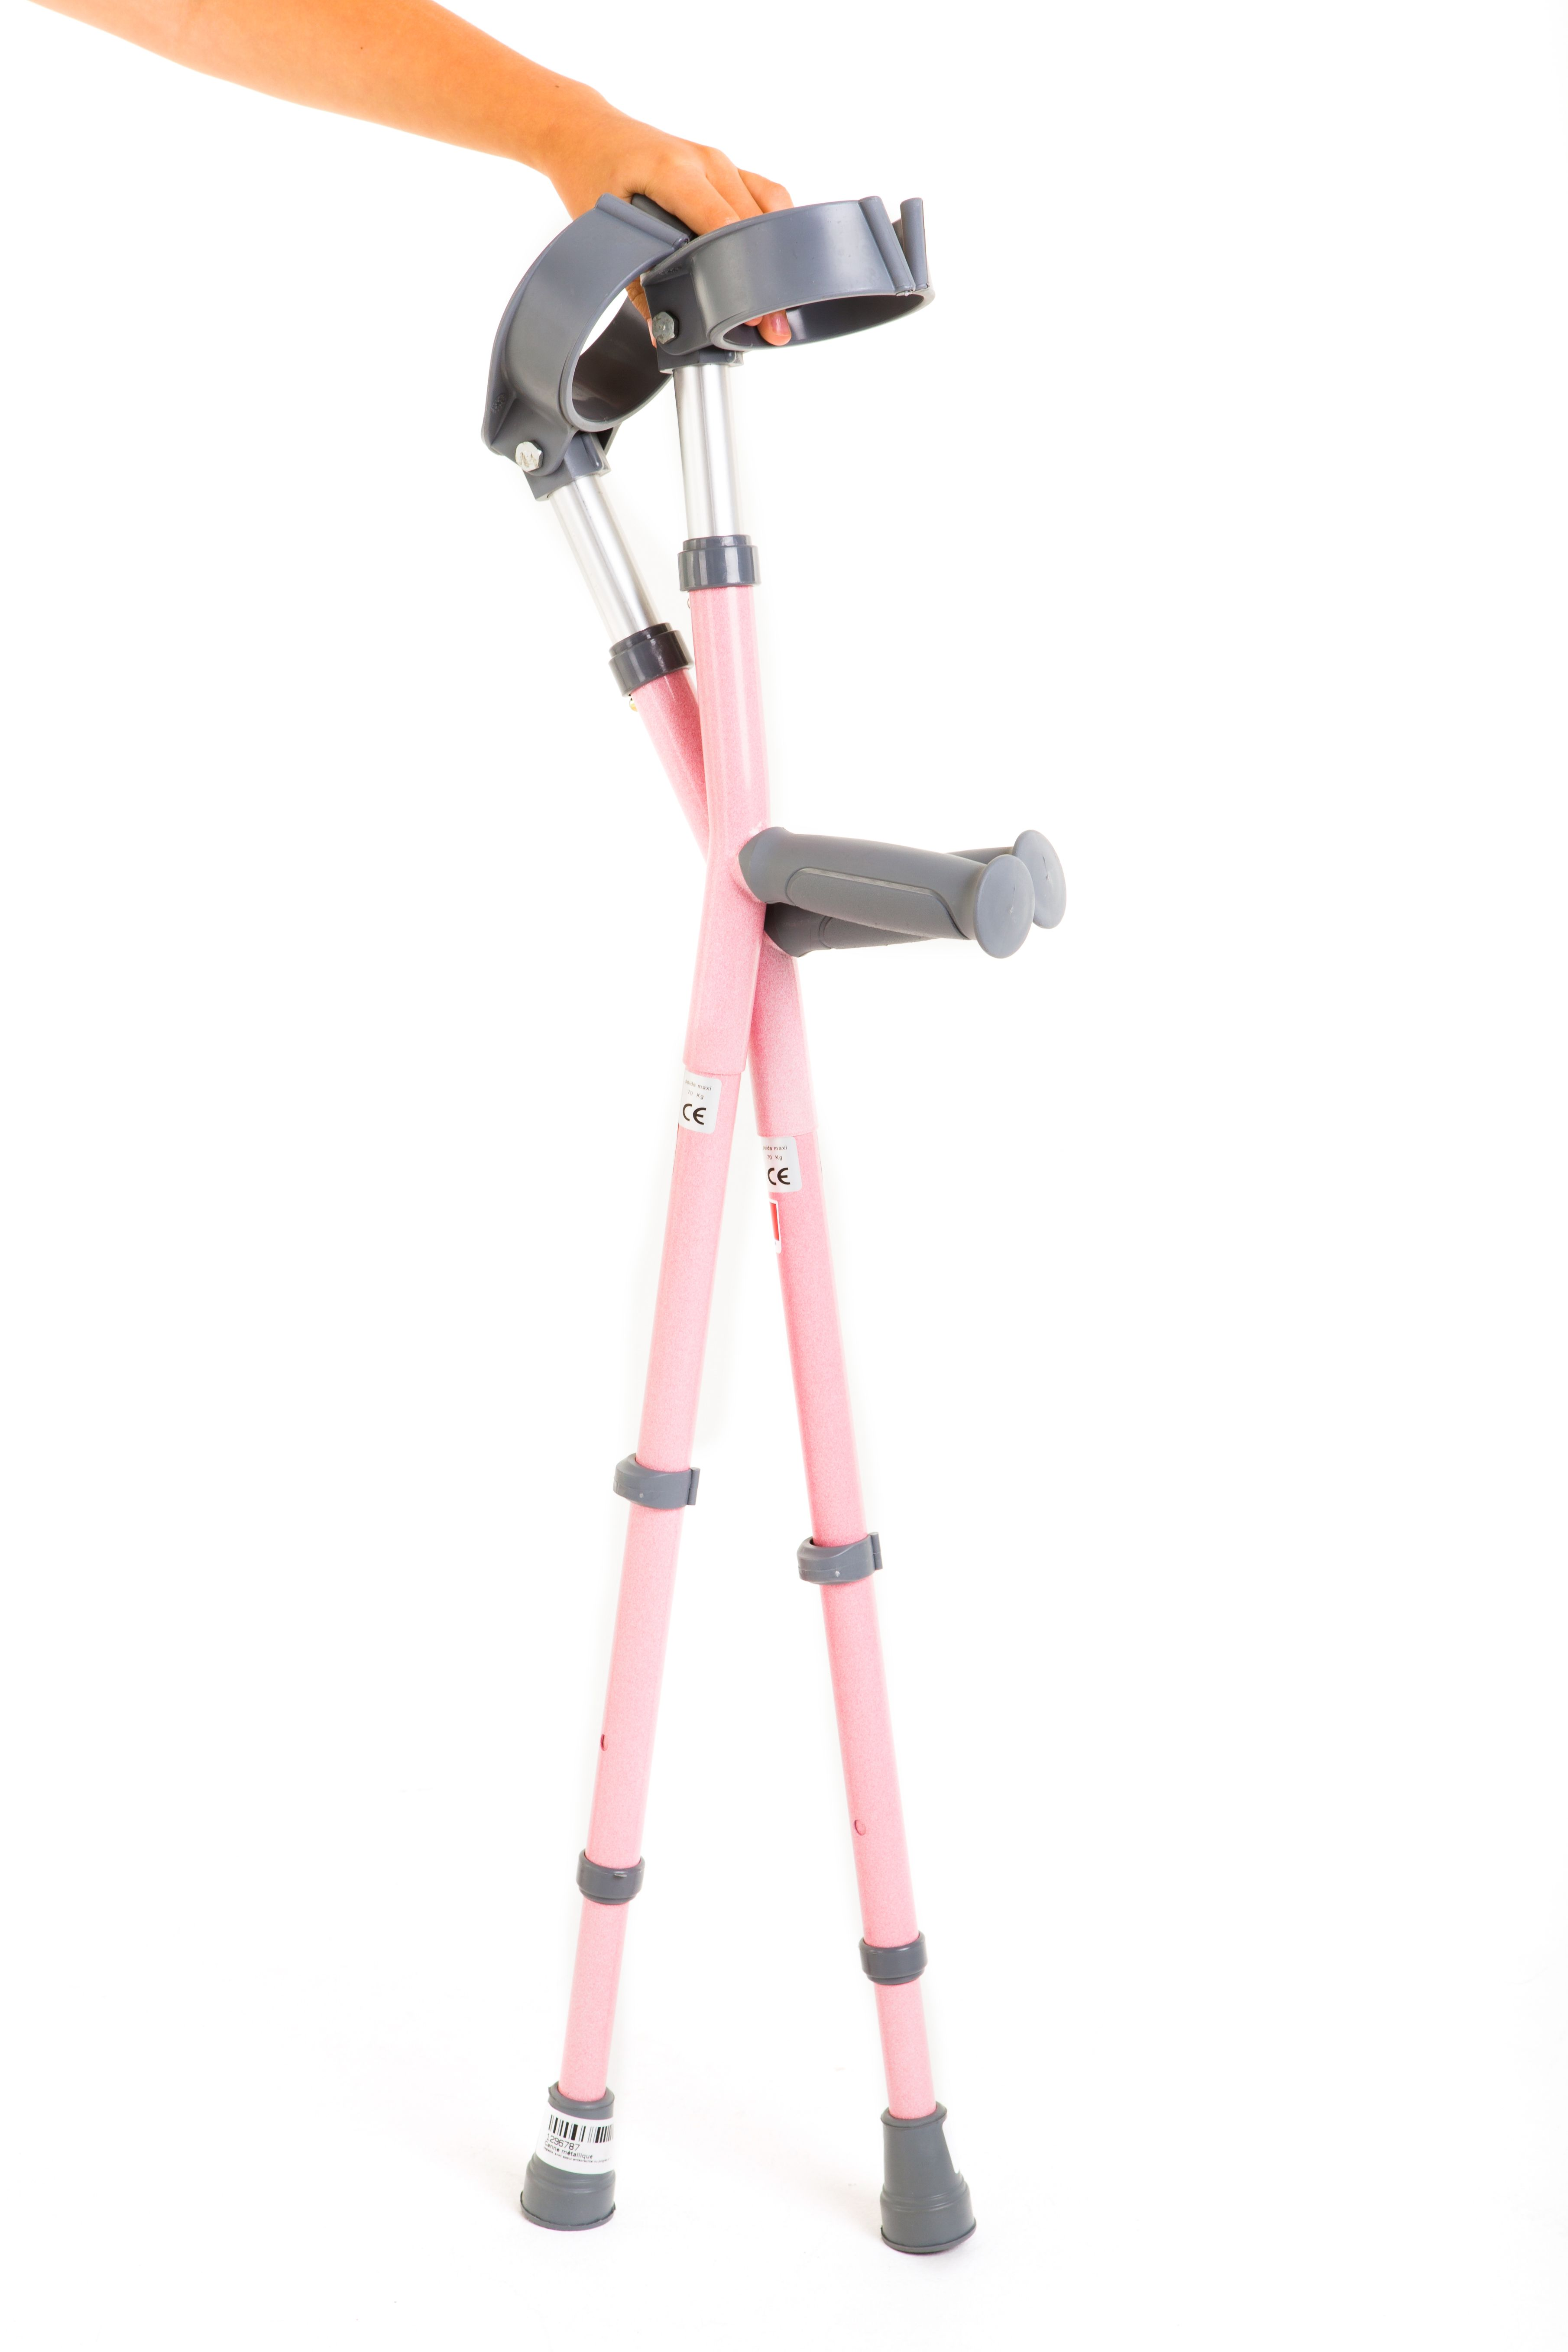 These colourful crutches really stand out from the crowd